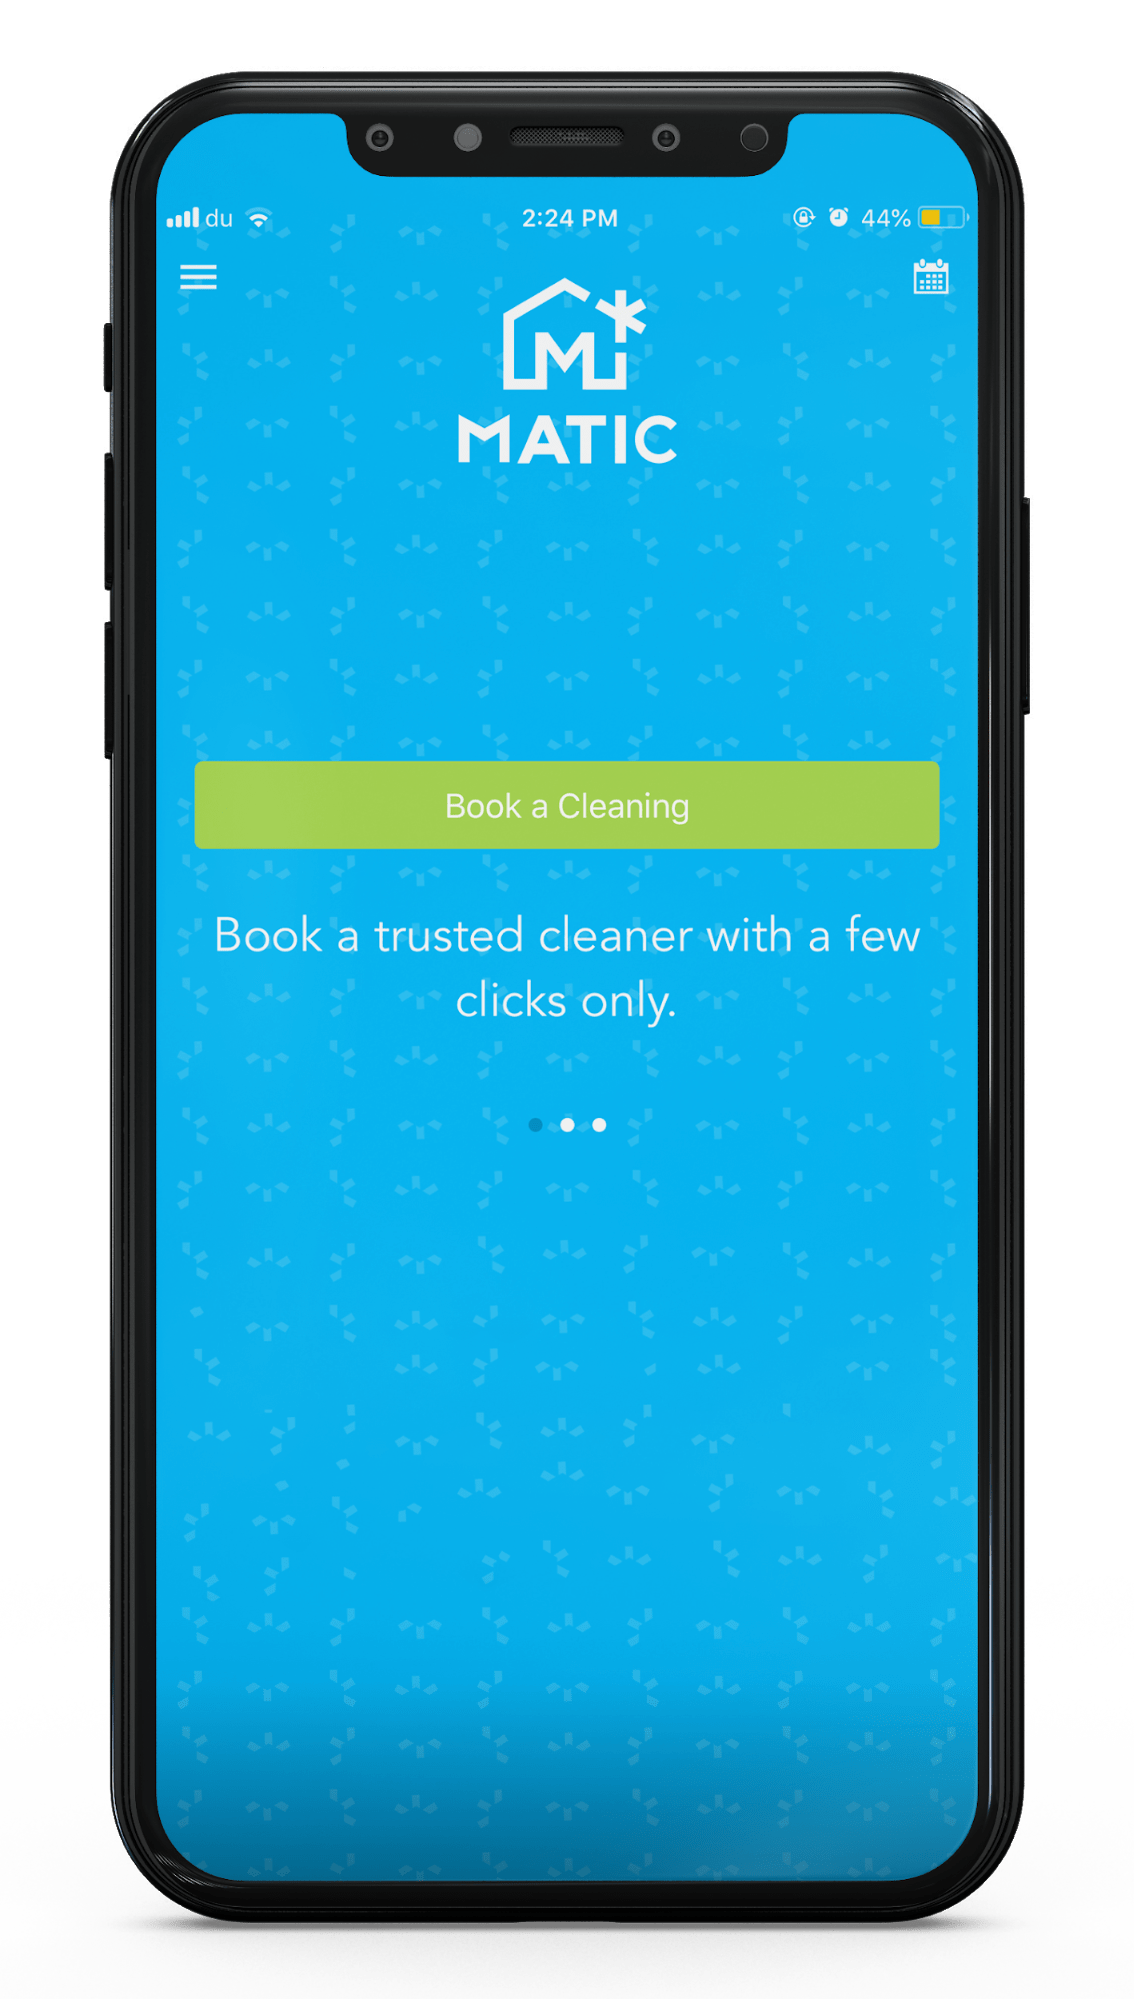 Dubai-based on-demand cleaning service marketplace Matic now